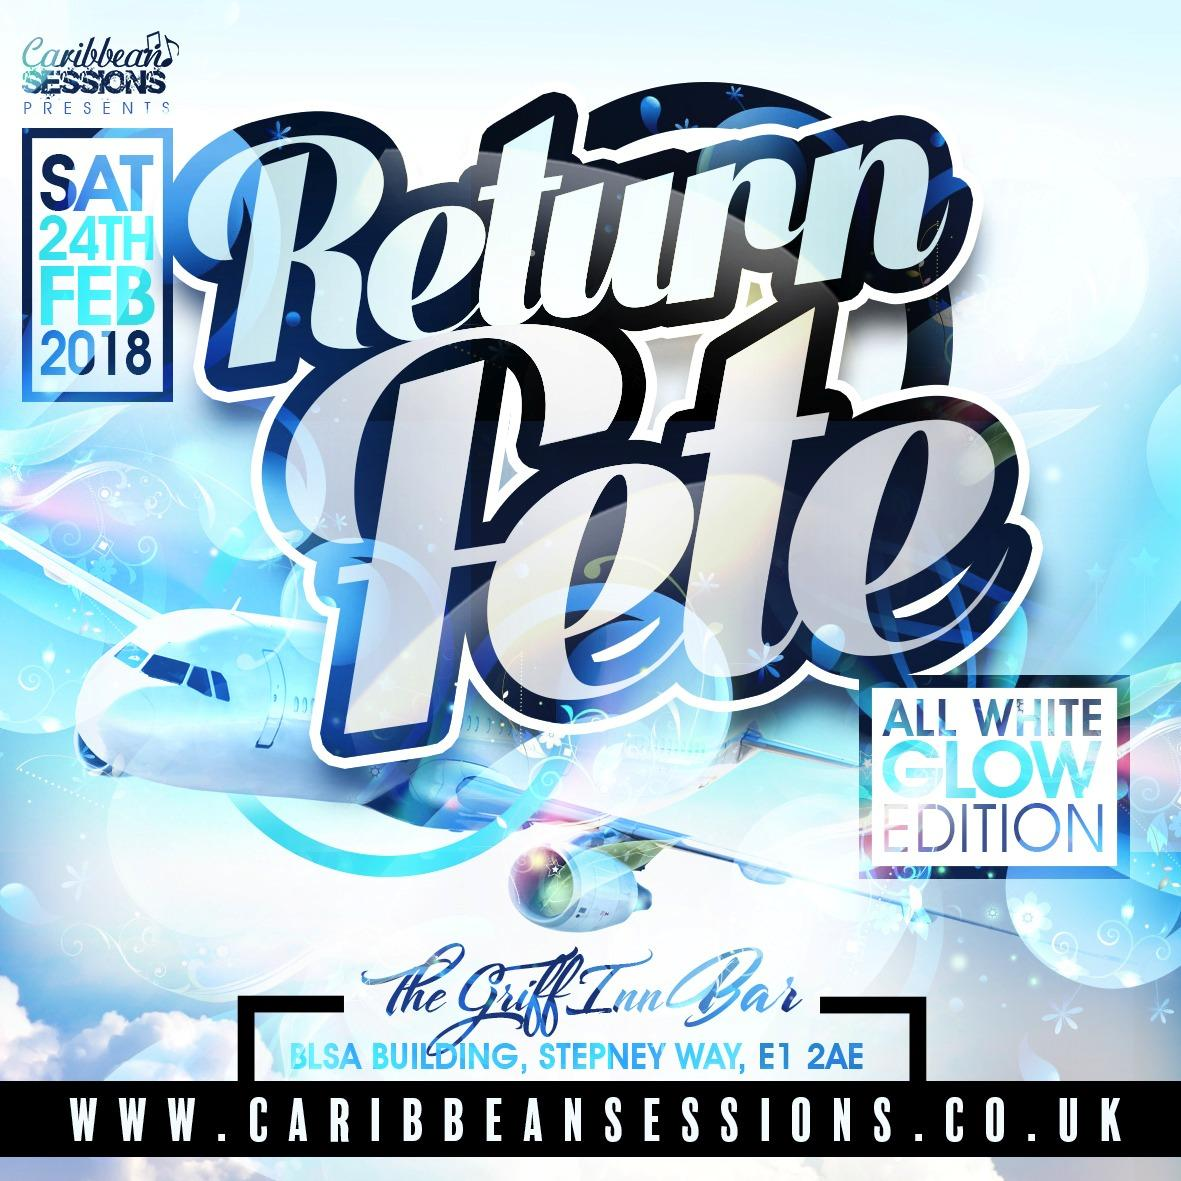 Caribbean Sessions - Return Fete (All White G